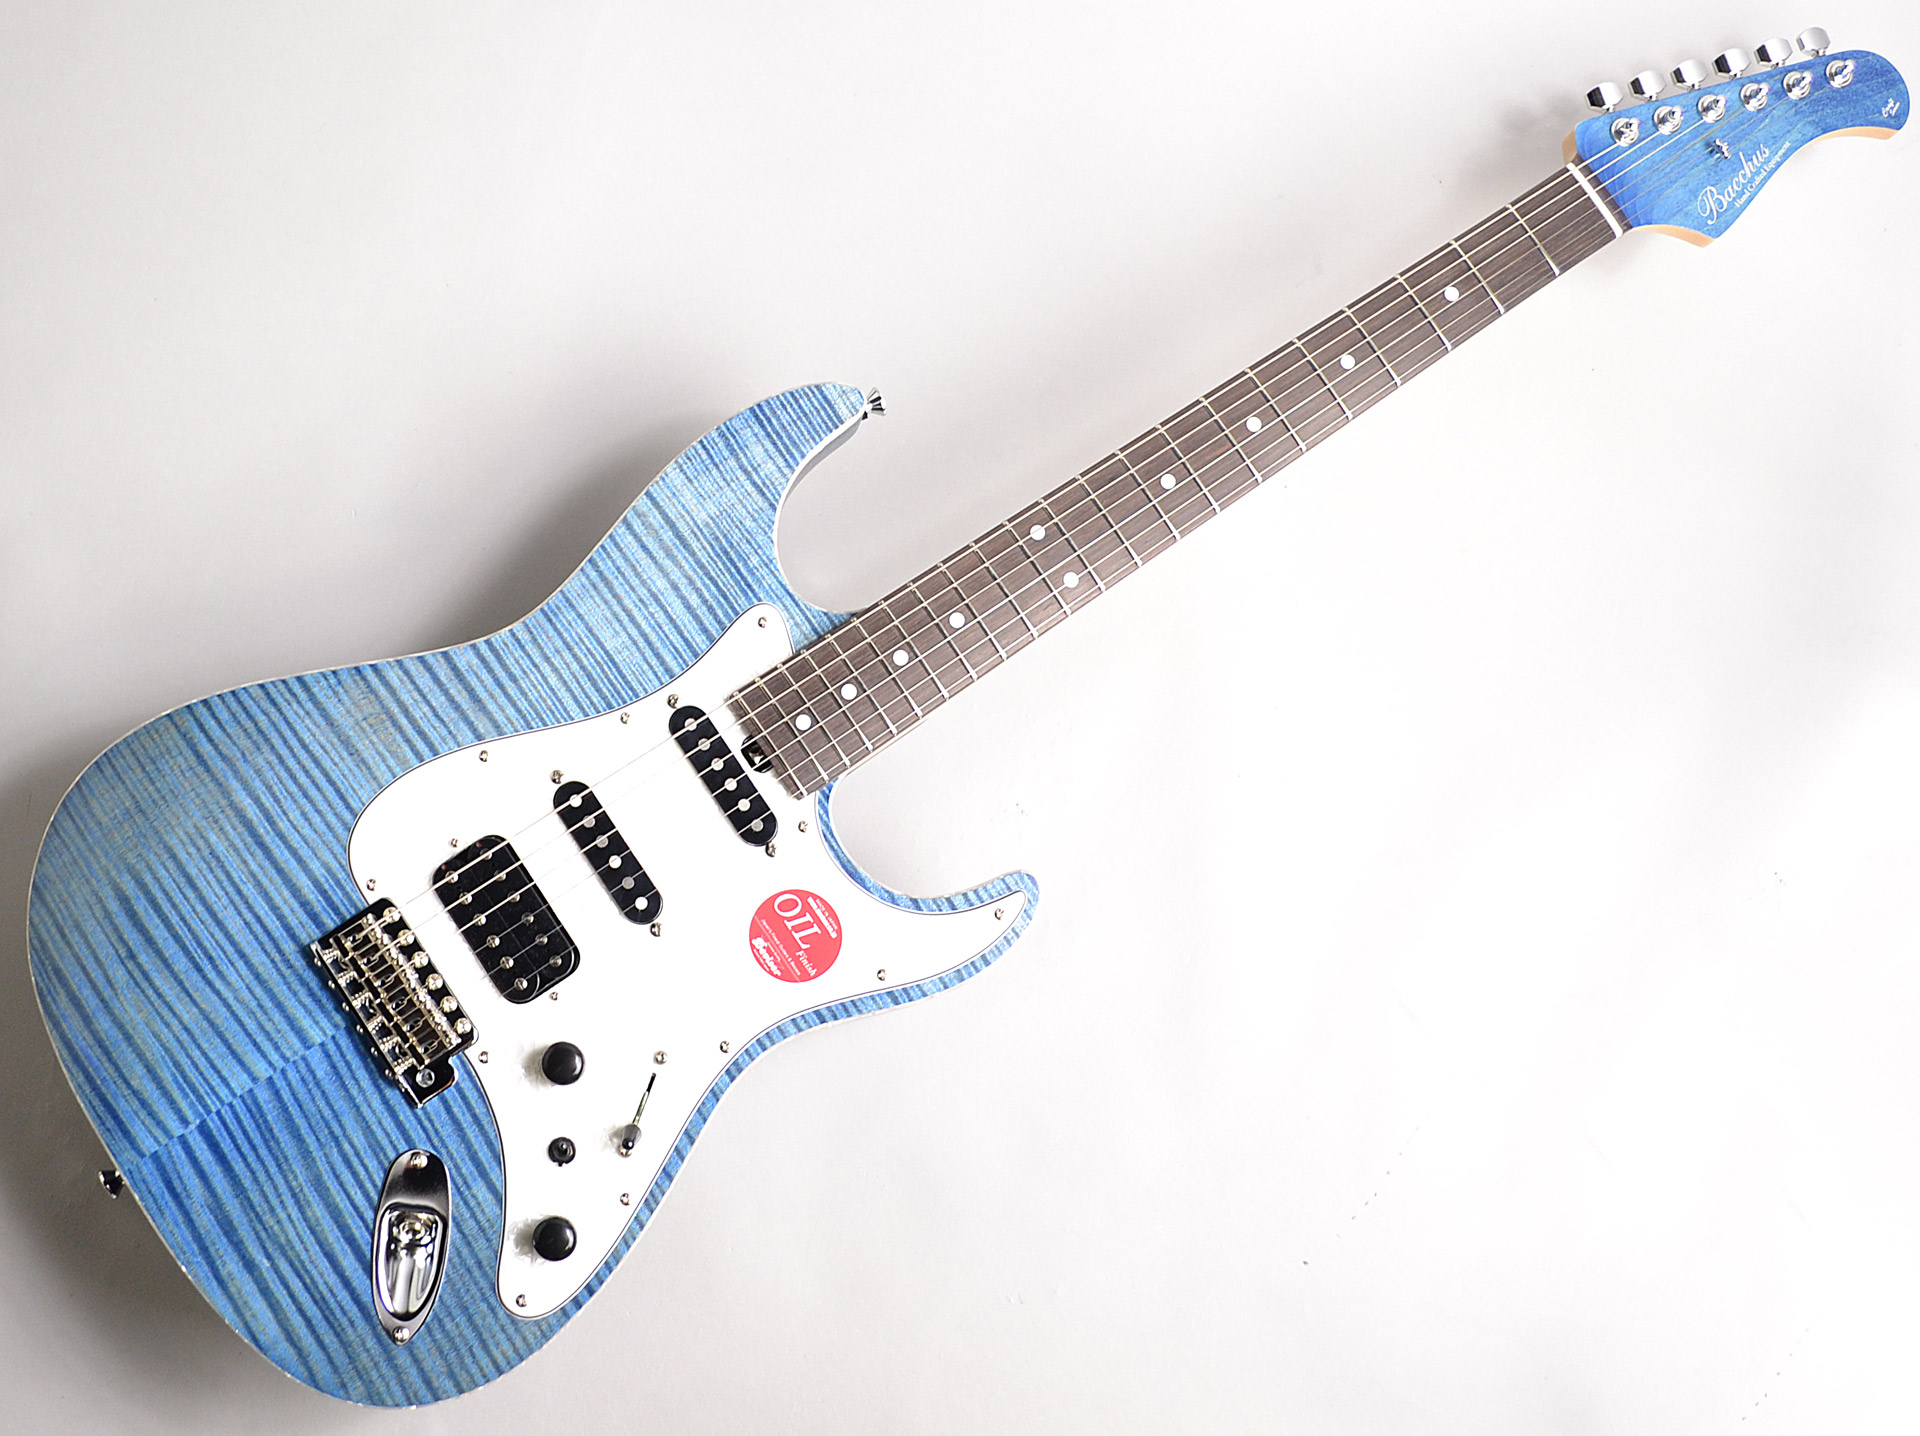 G-STUDIO-FM CUSTOM BlueOil